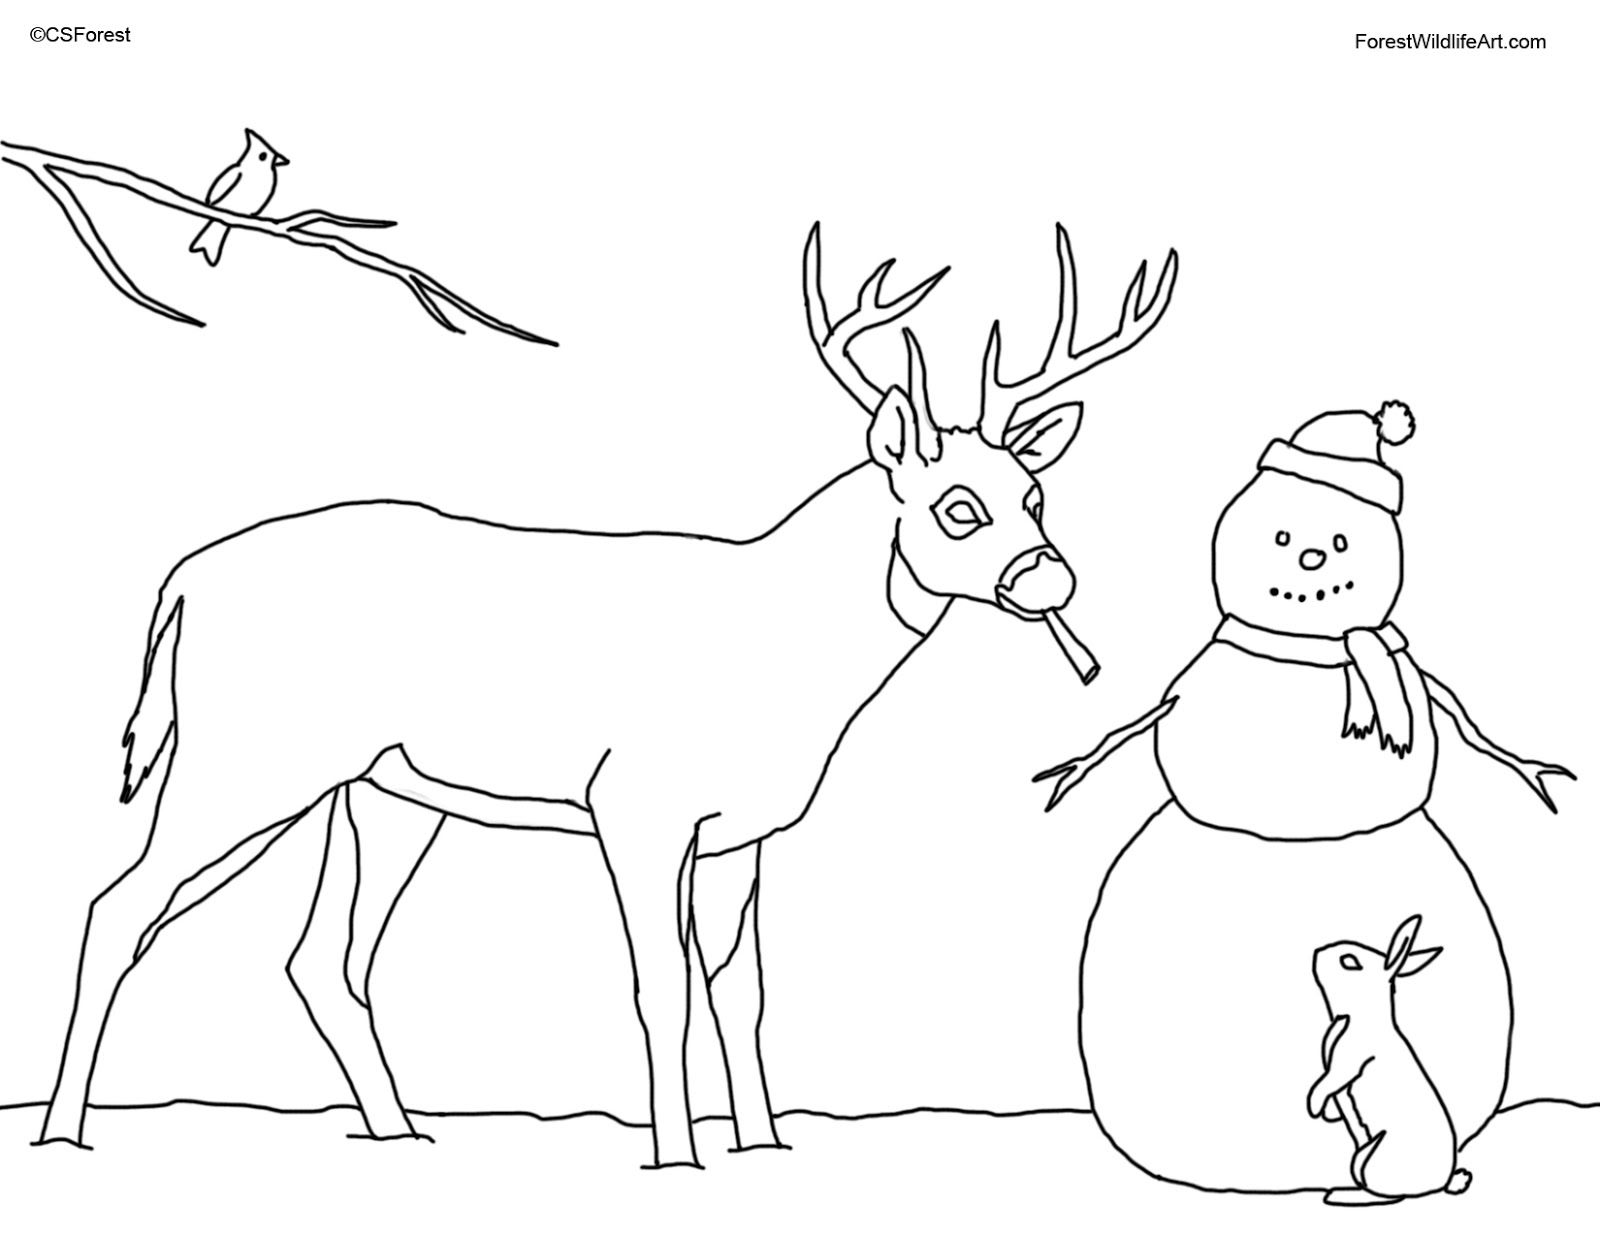 Snowman Coloring Pages | ... Wildlife Art: Coloring Book Page for ...